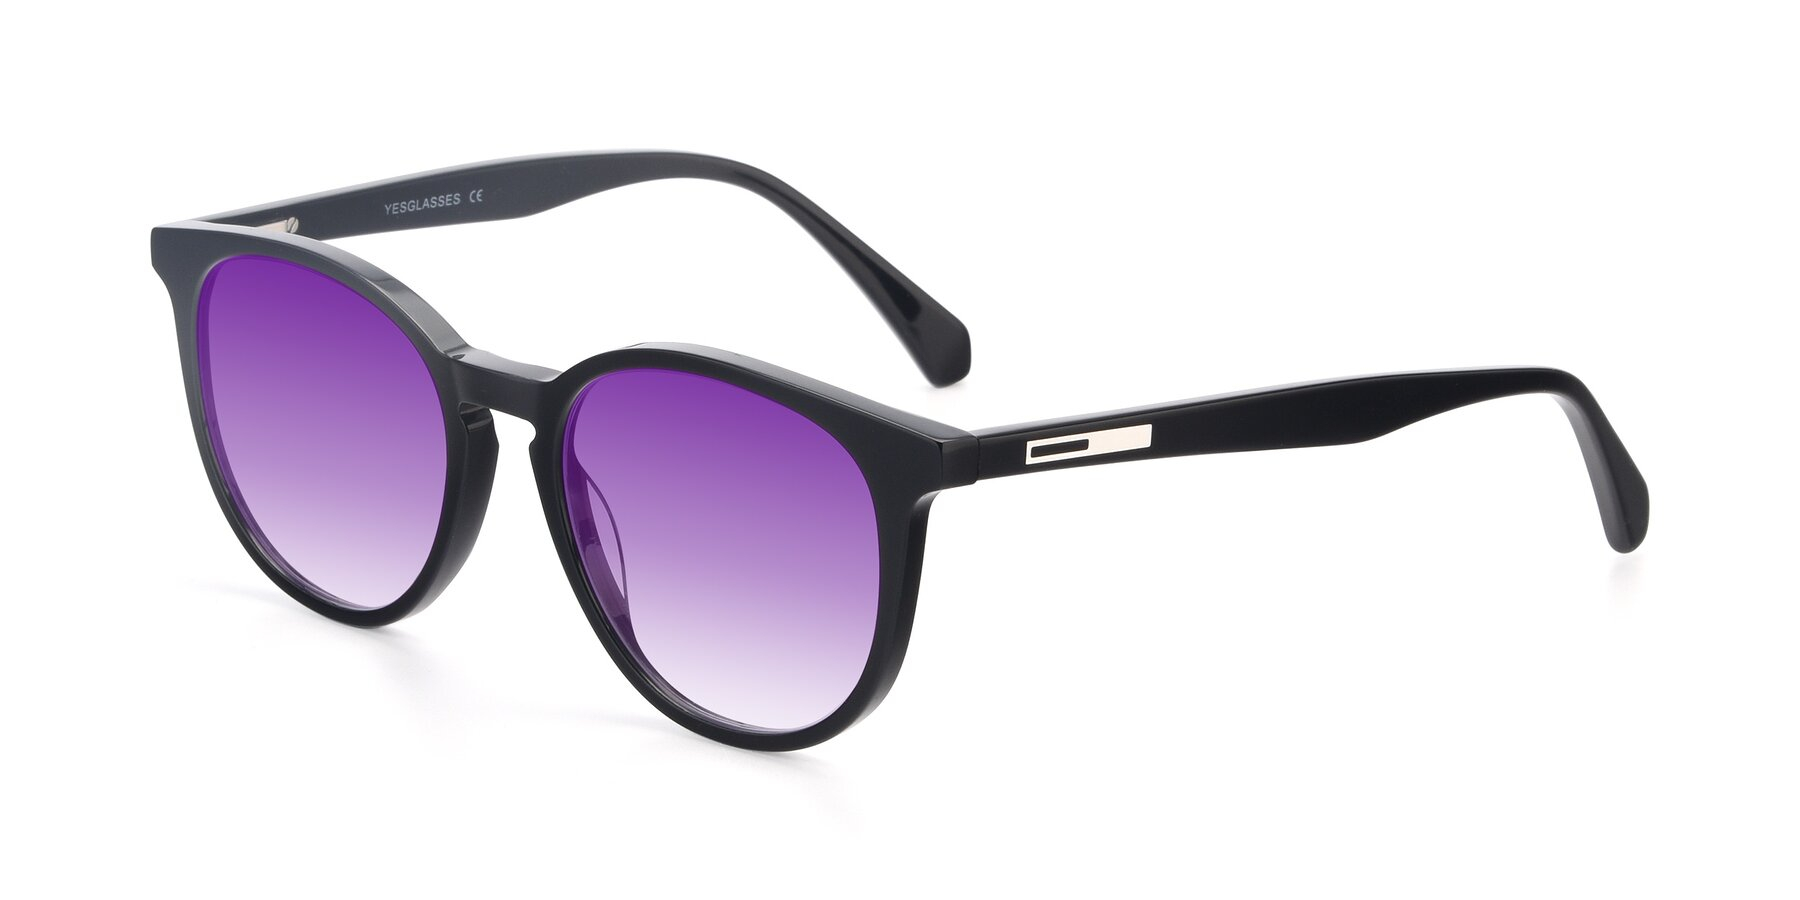 Angle of 17721 in Black with Purple Gradient Lenses